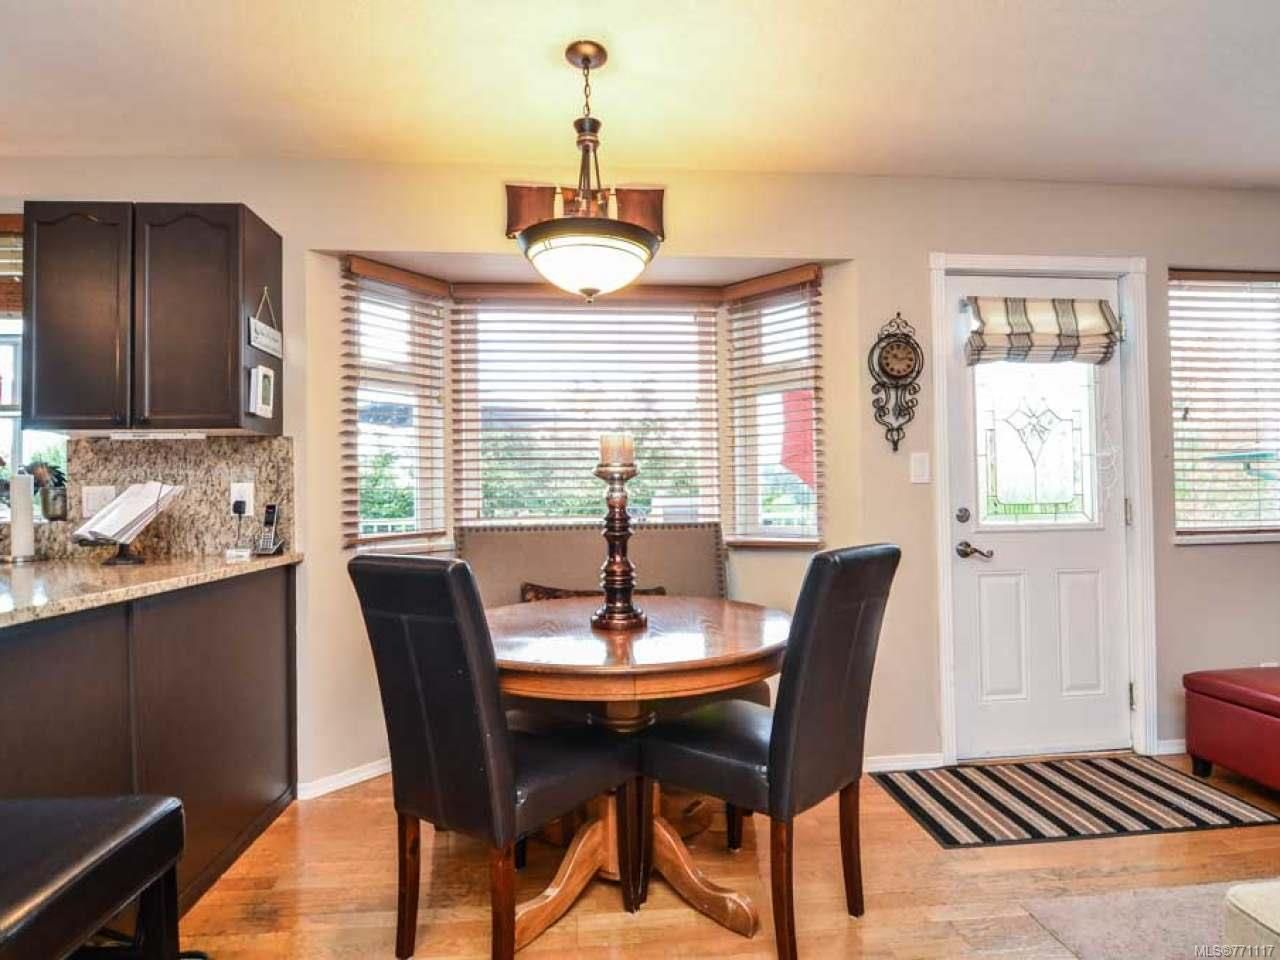 Photo 19: Photos: 697 Steenbuck Dr in CAMPBELL RIVER: CR Campbell River Central House for sale (Campbell River)  : MLS®# 771117